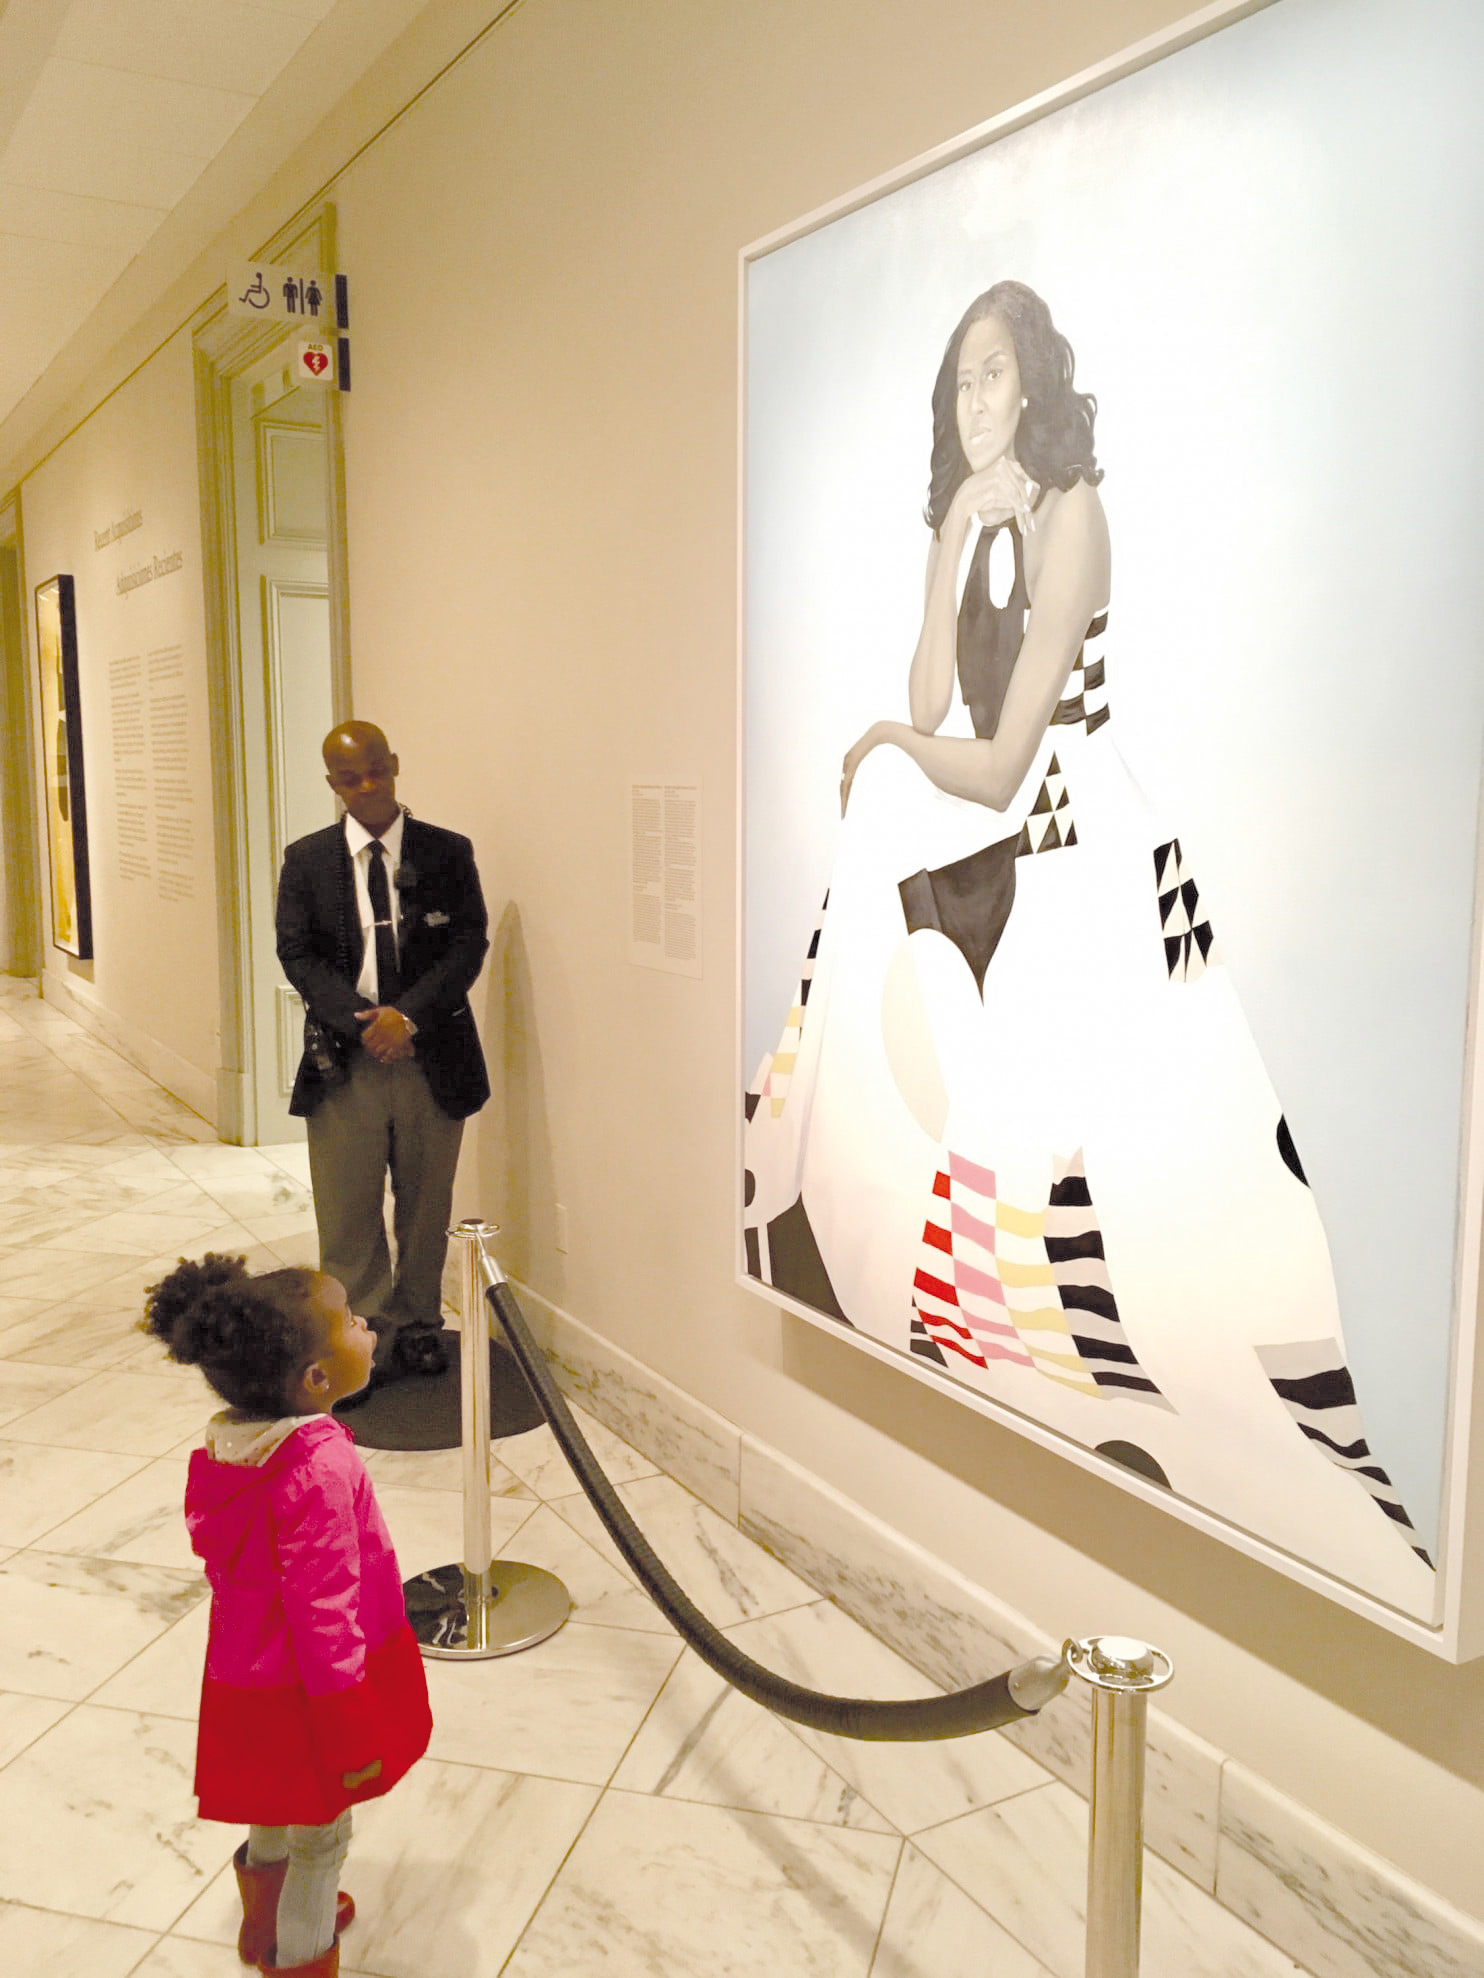 Parker Curry viewing portrait of Michelle Obama Image: Ben Hines